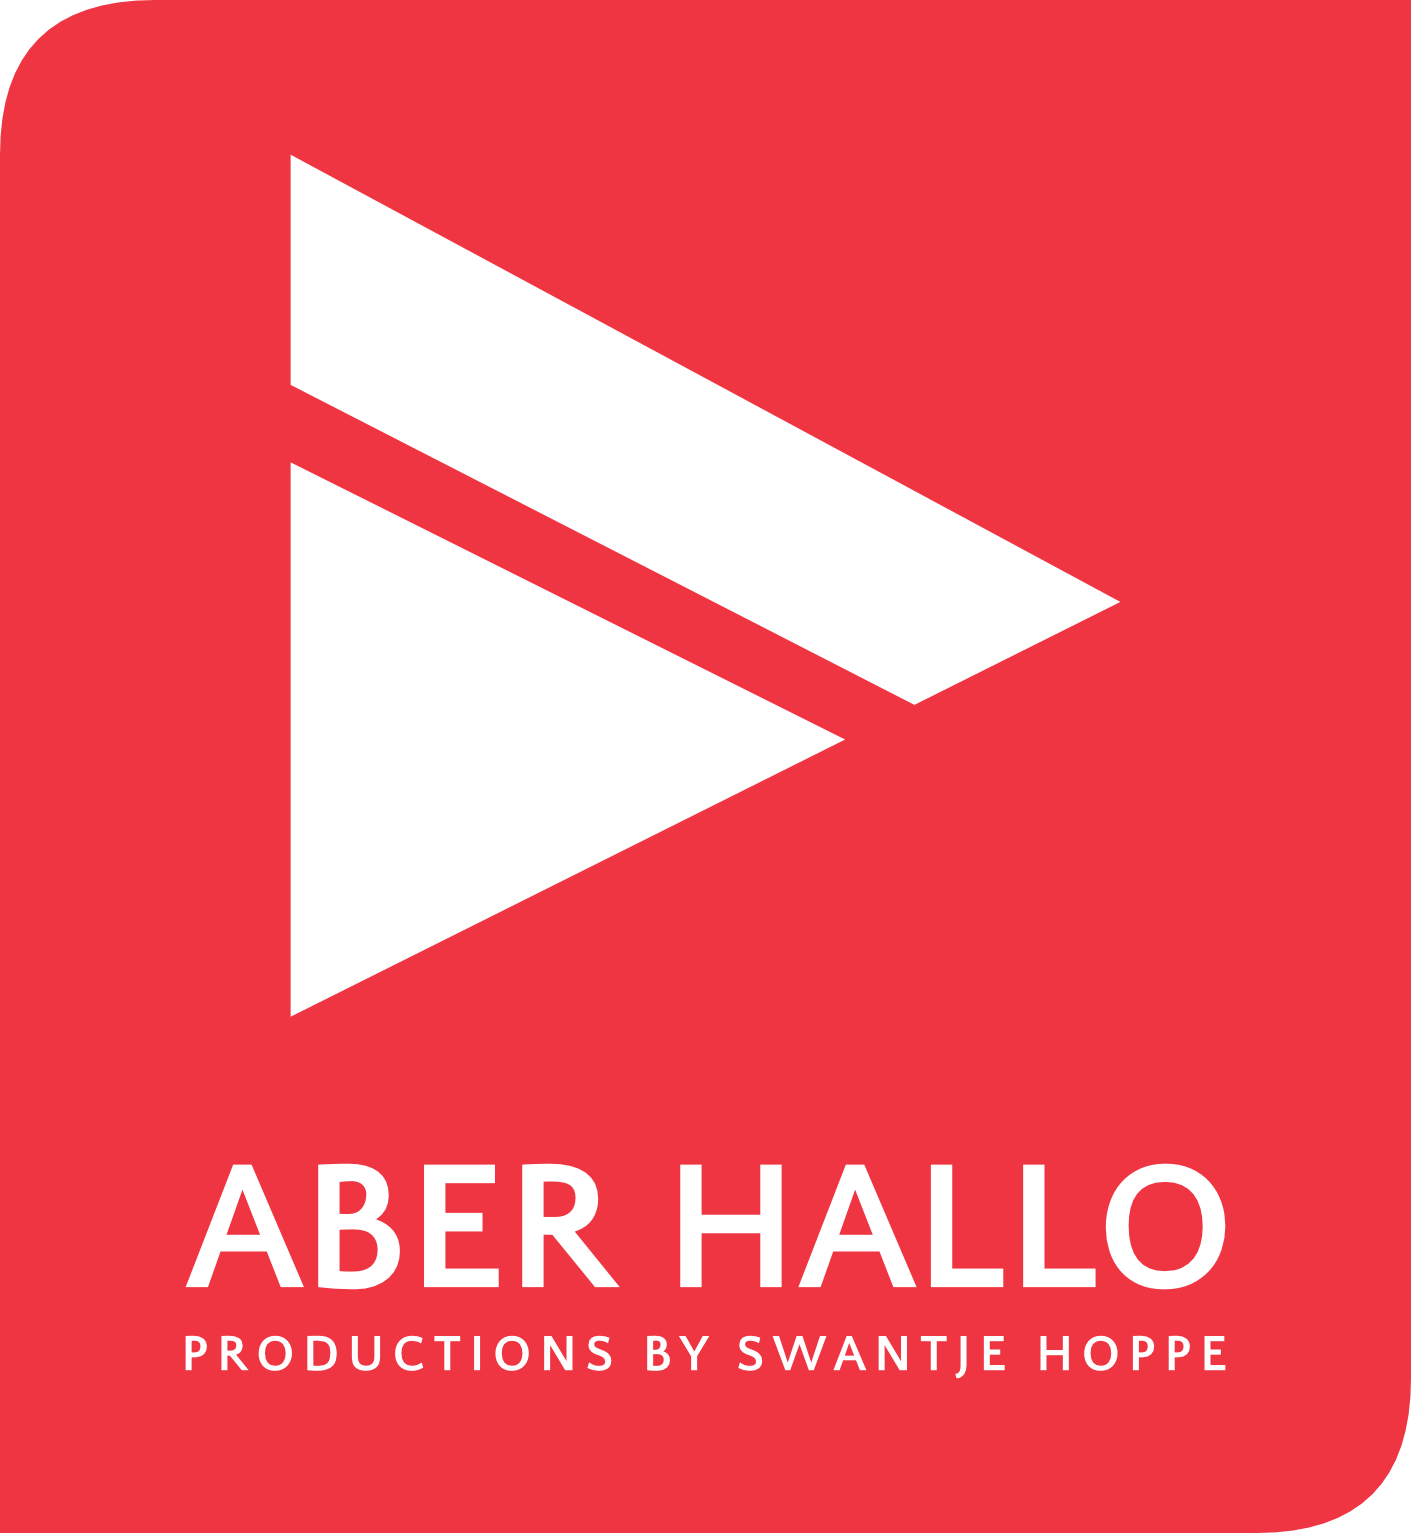 Aber Hallo Productions by Swantje Hoppe